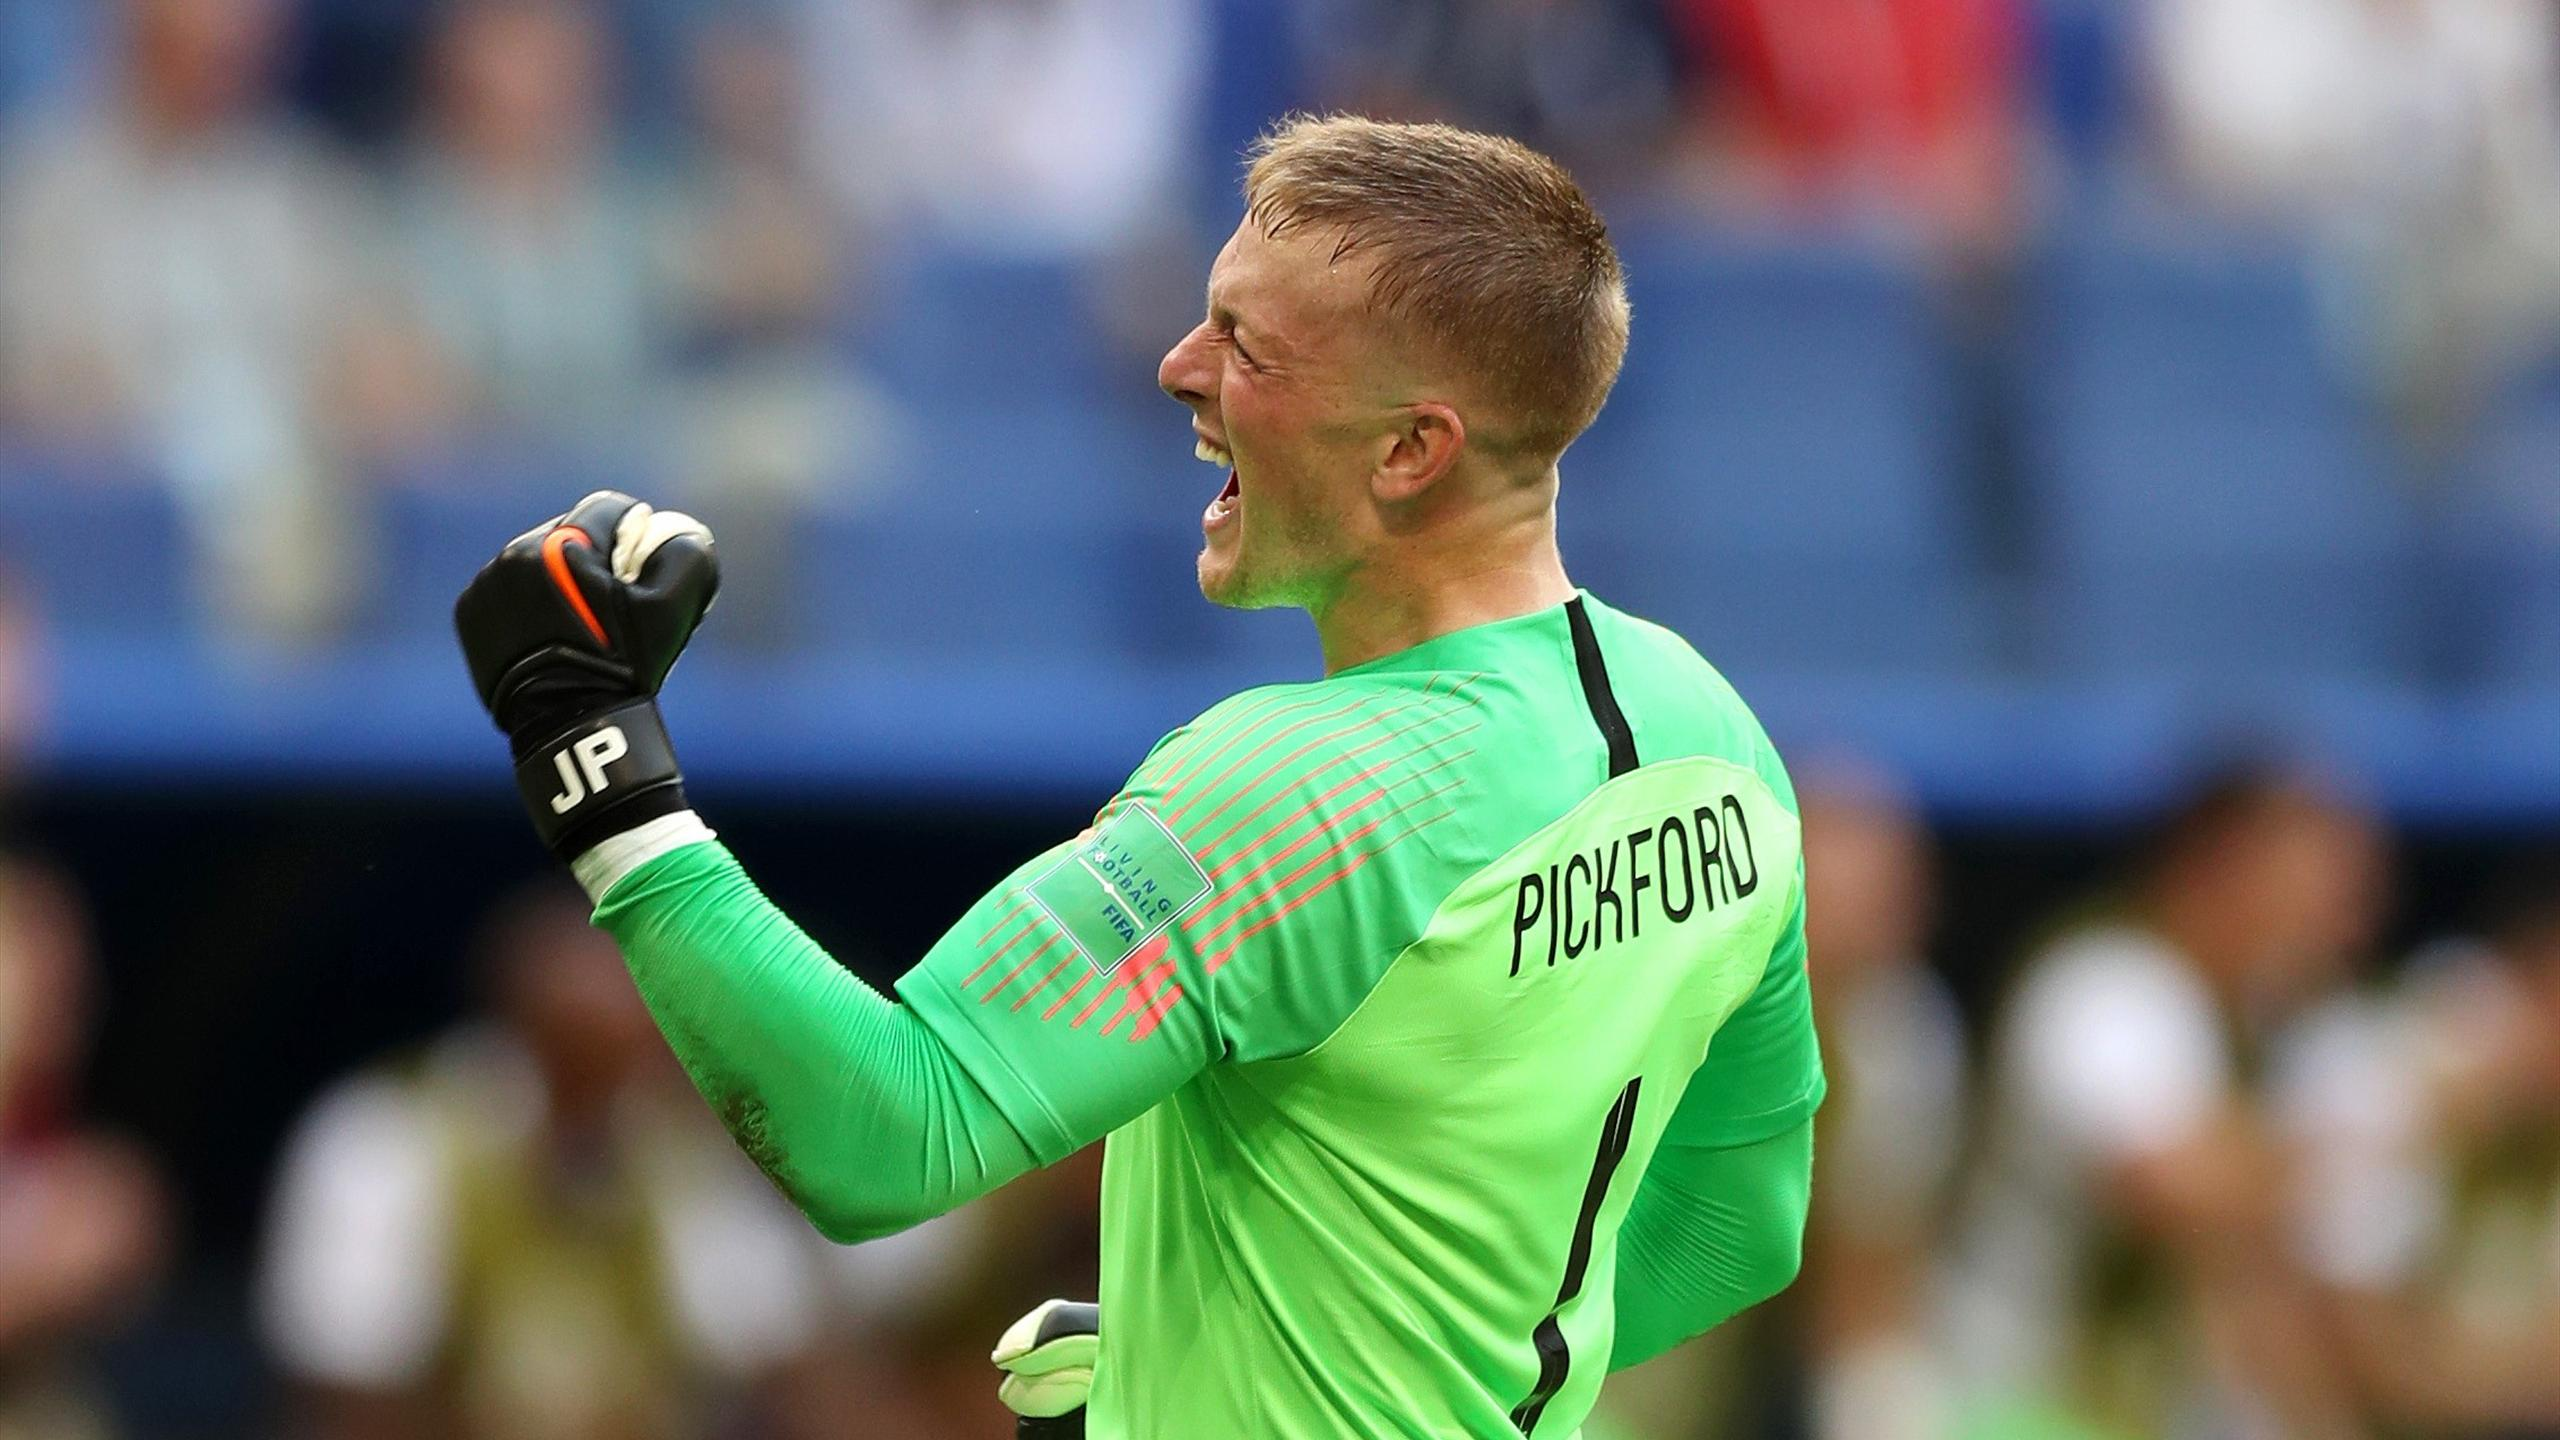 Jordan Pickford the best keeper in the world    reaction to England      Jordan Pickford the best keeper in the world    reaction to England  stopper heroics   World Cup 2018   Football   Eurosport